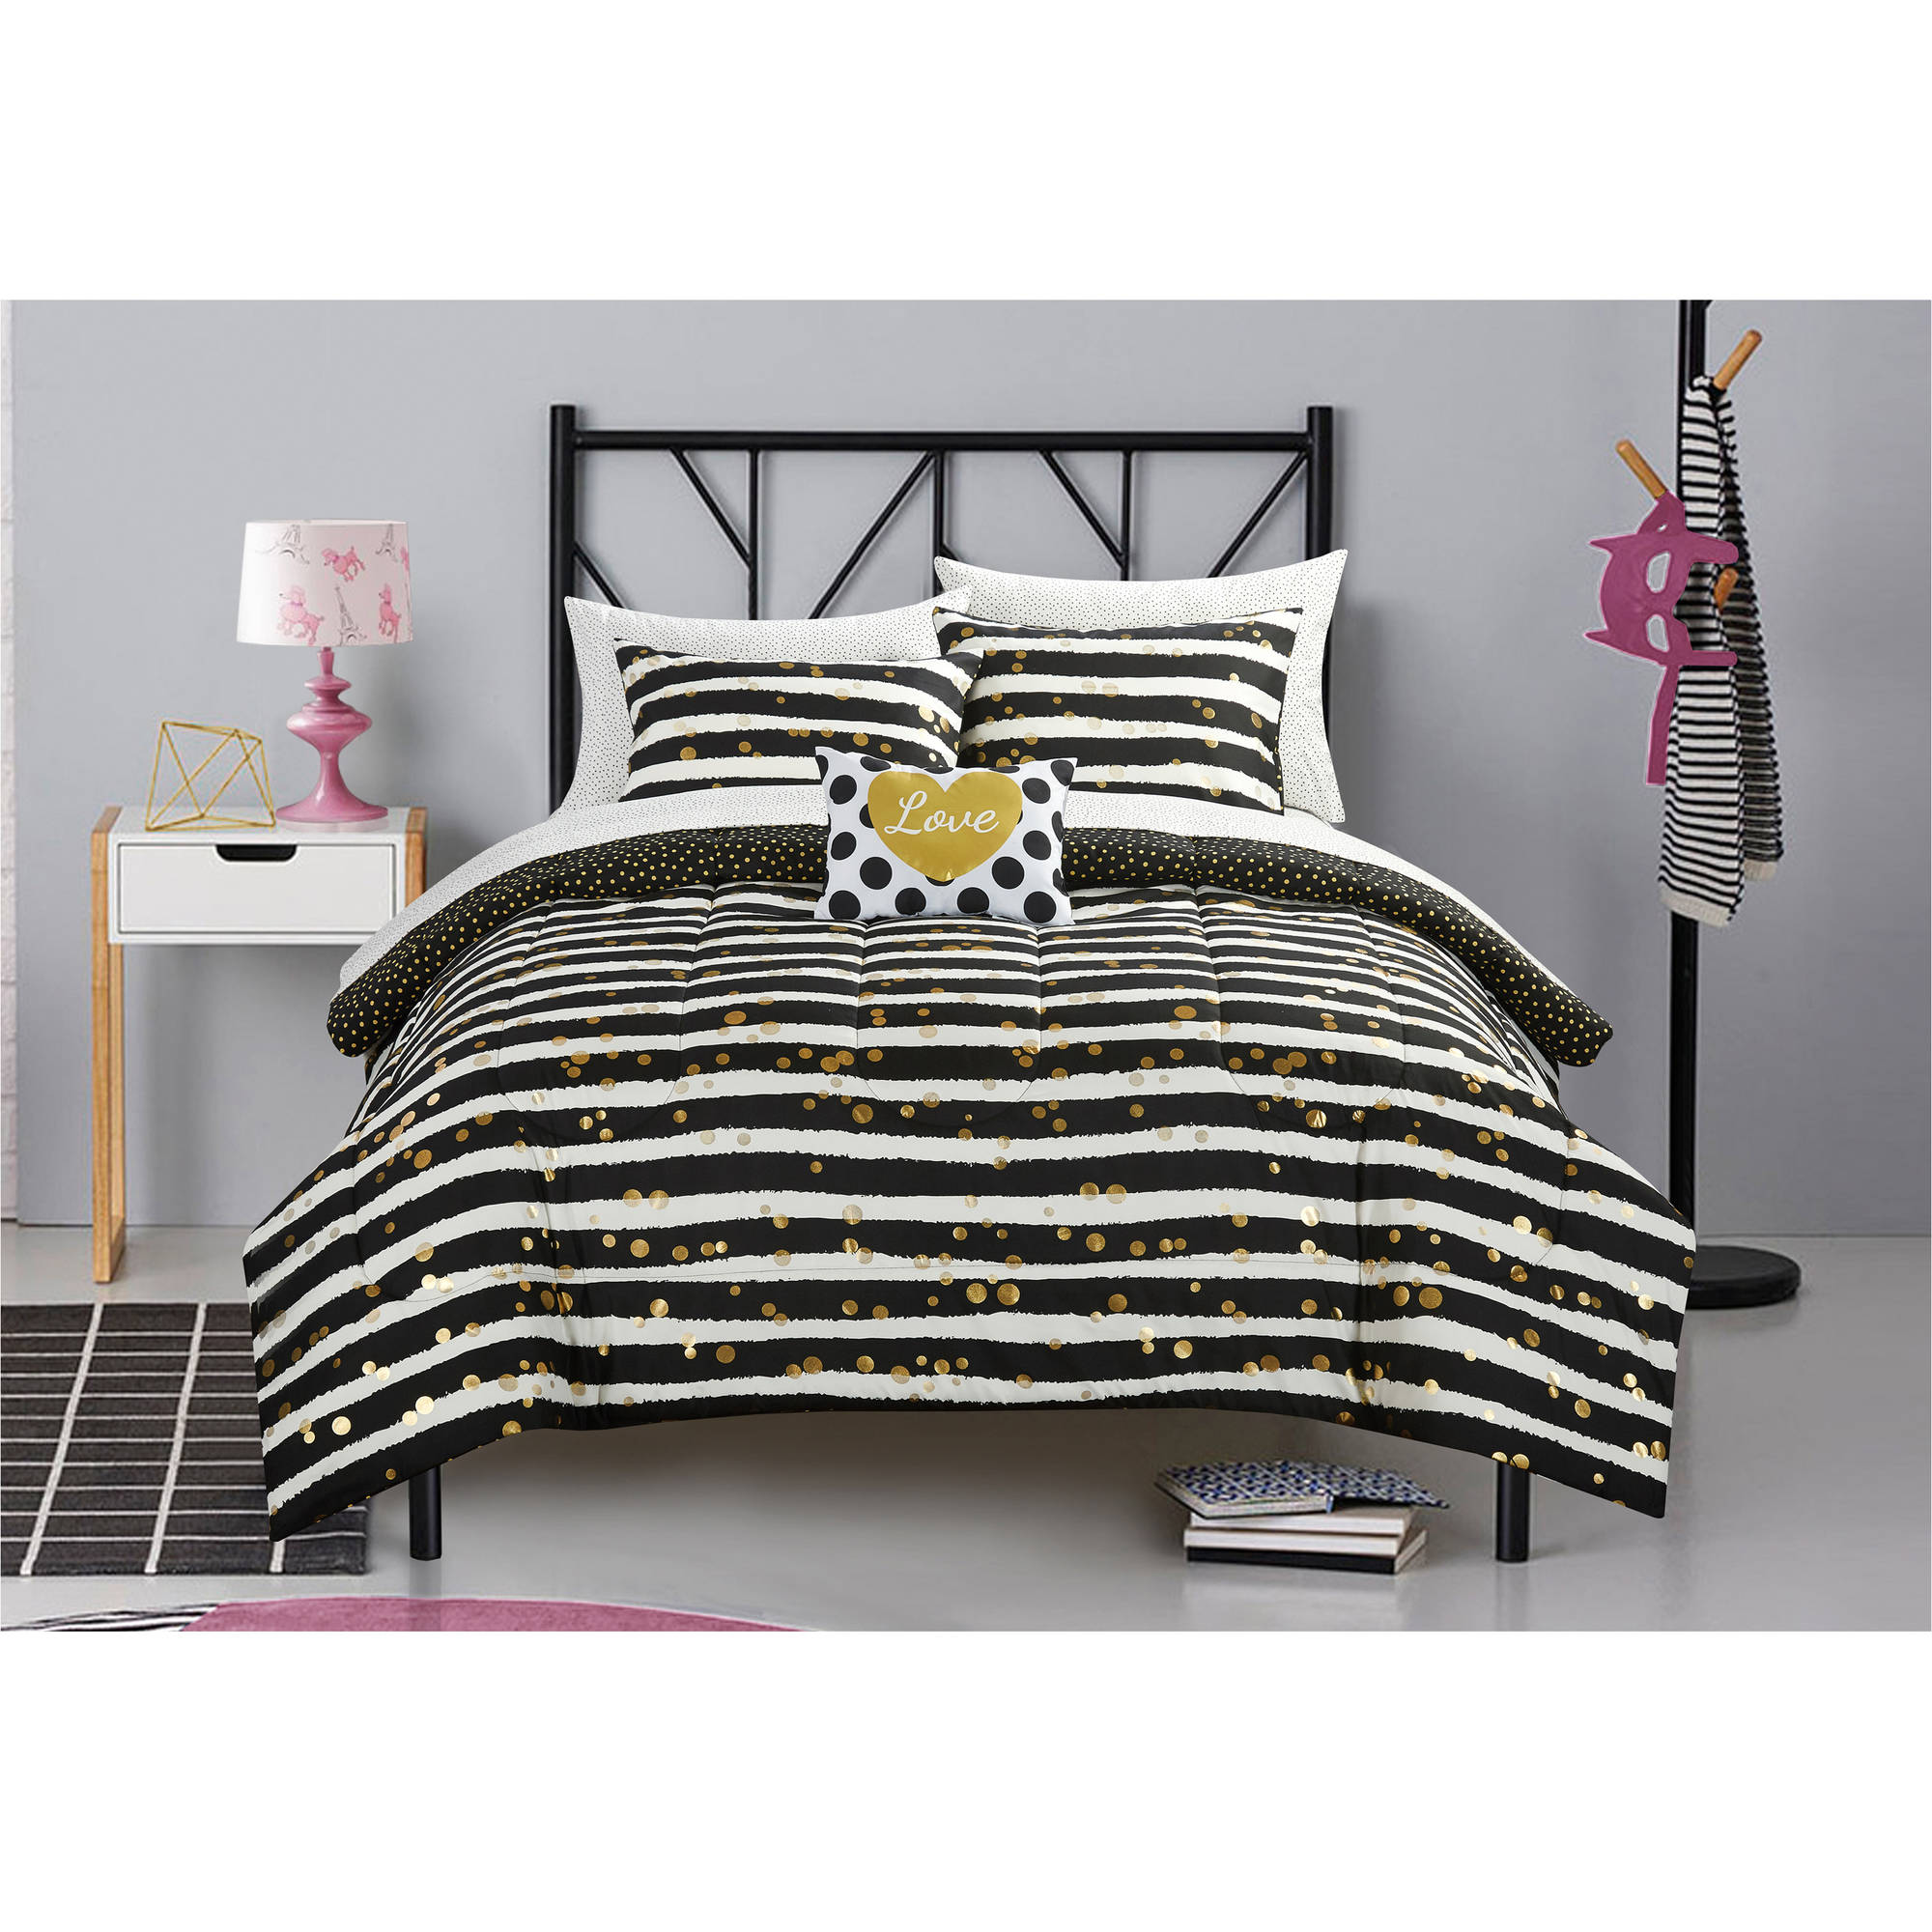 Latitude Gold Glitter Stripe And Polka Dot Bed In A Bag